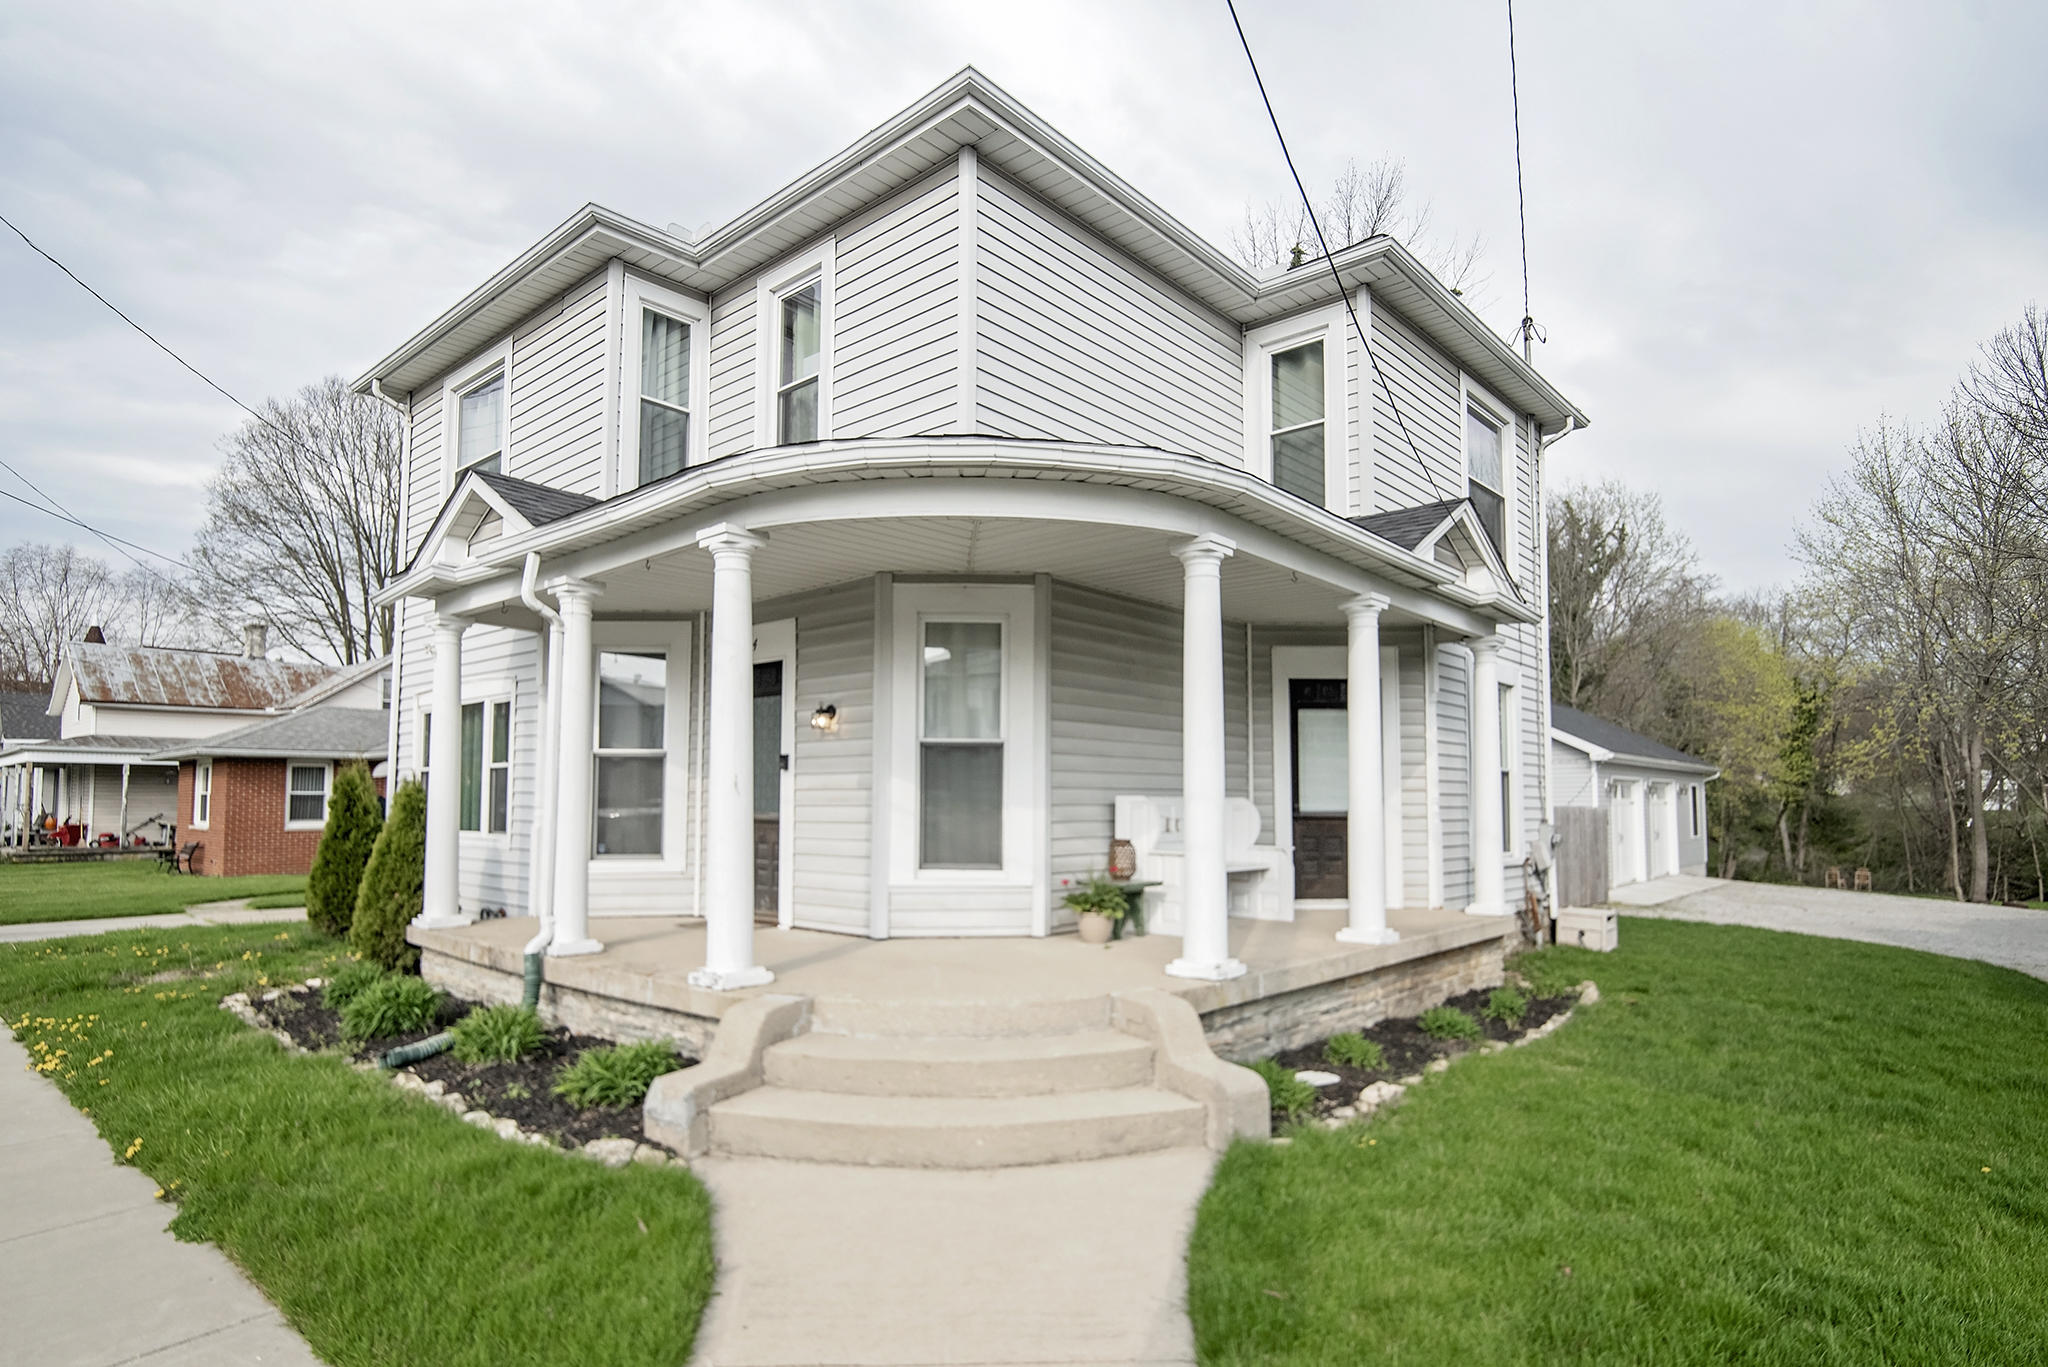 34 W Xenia Avenue Property Photo - Cedarville, OH real estate listing